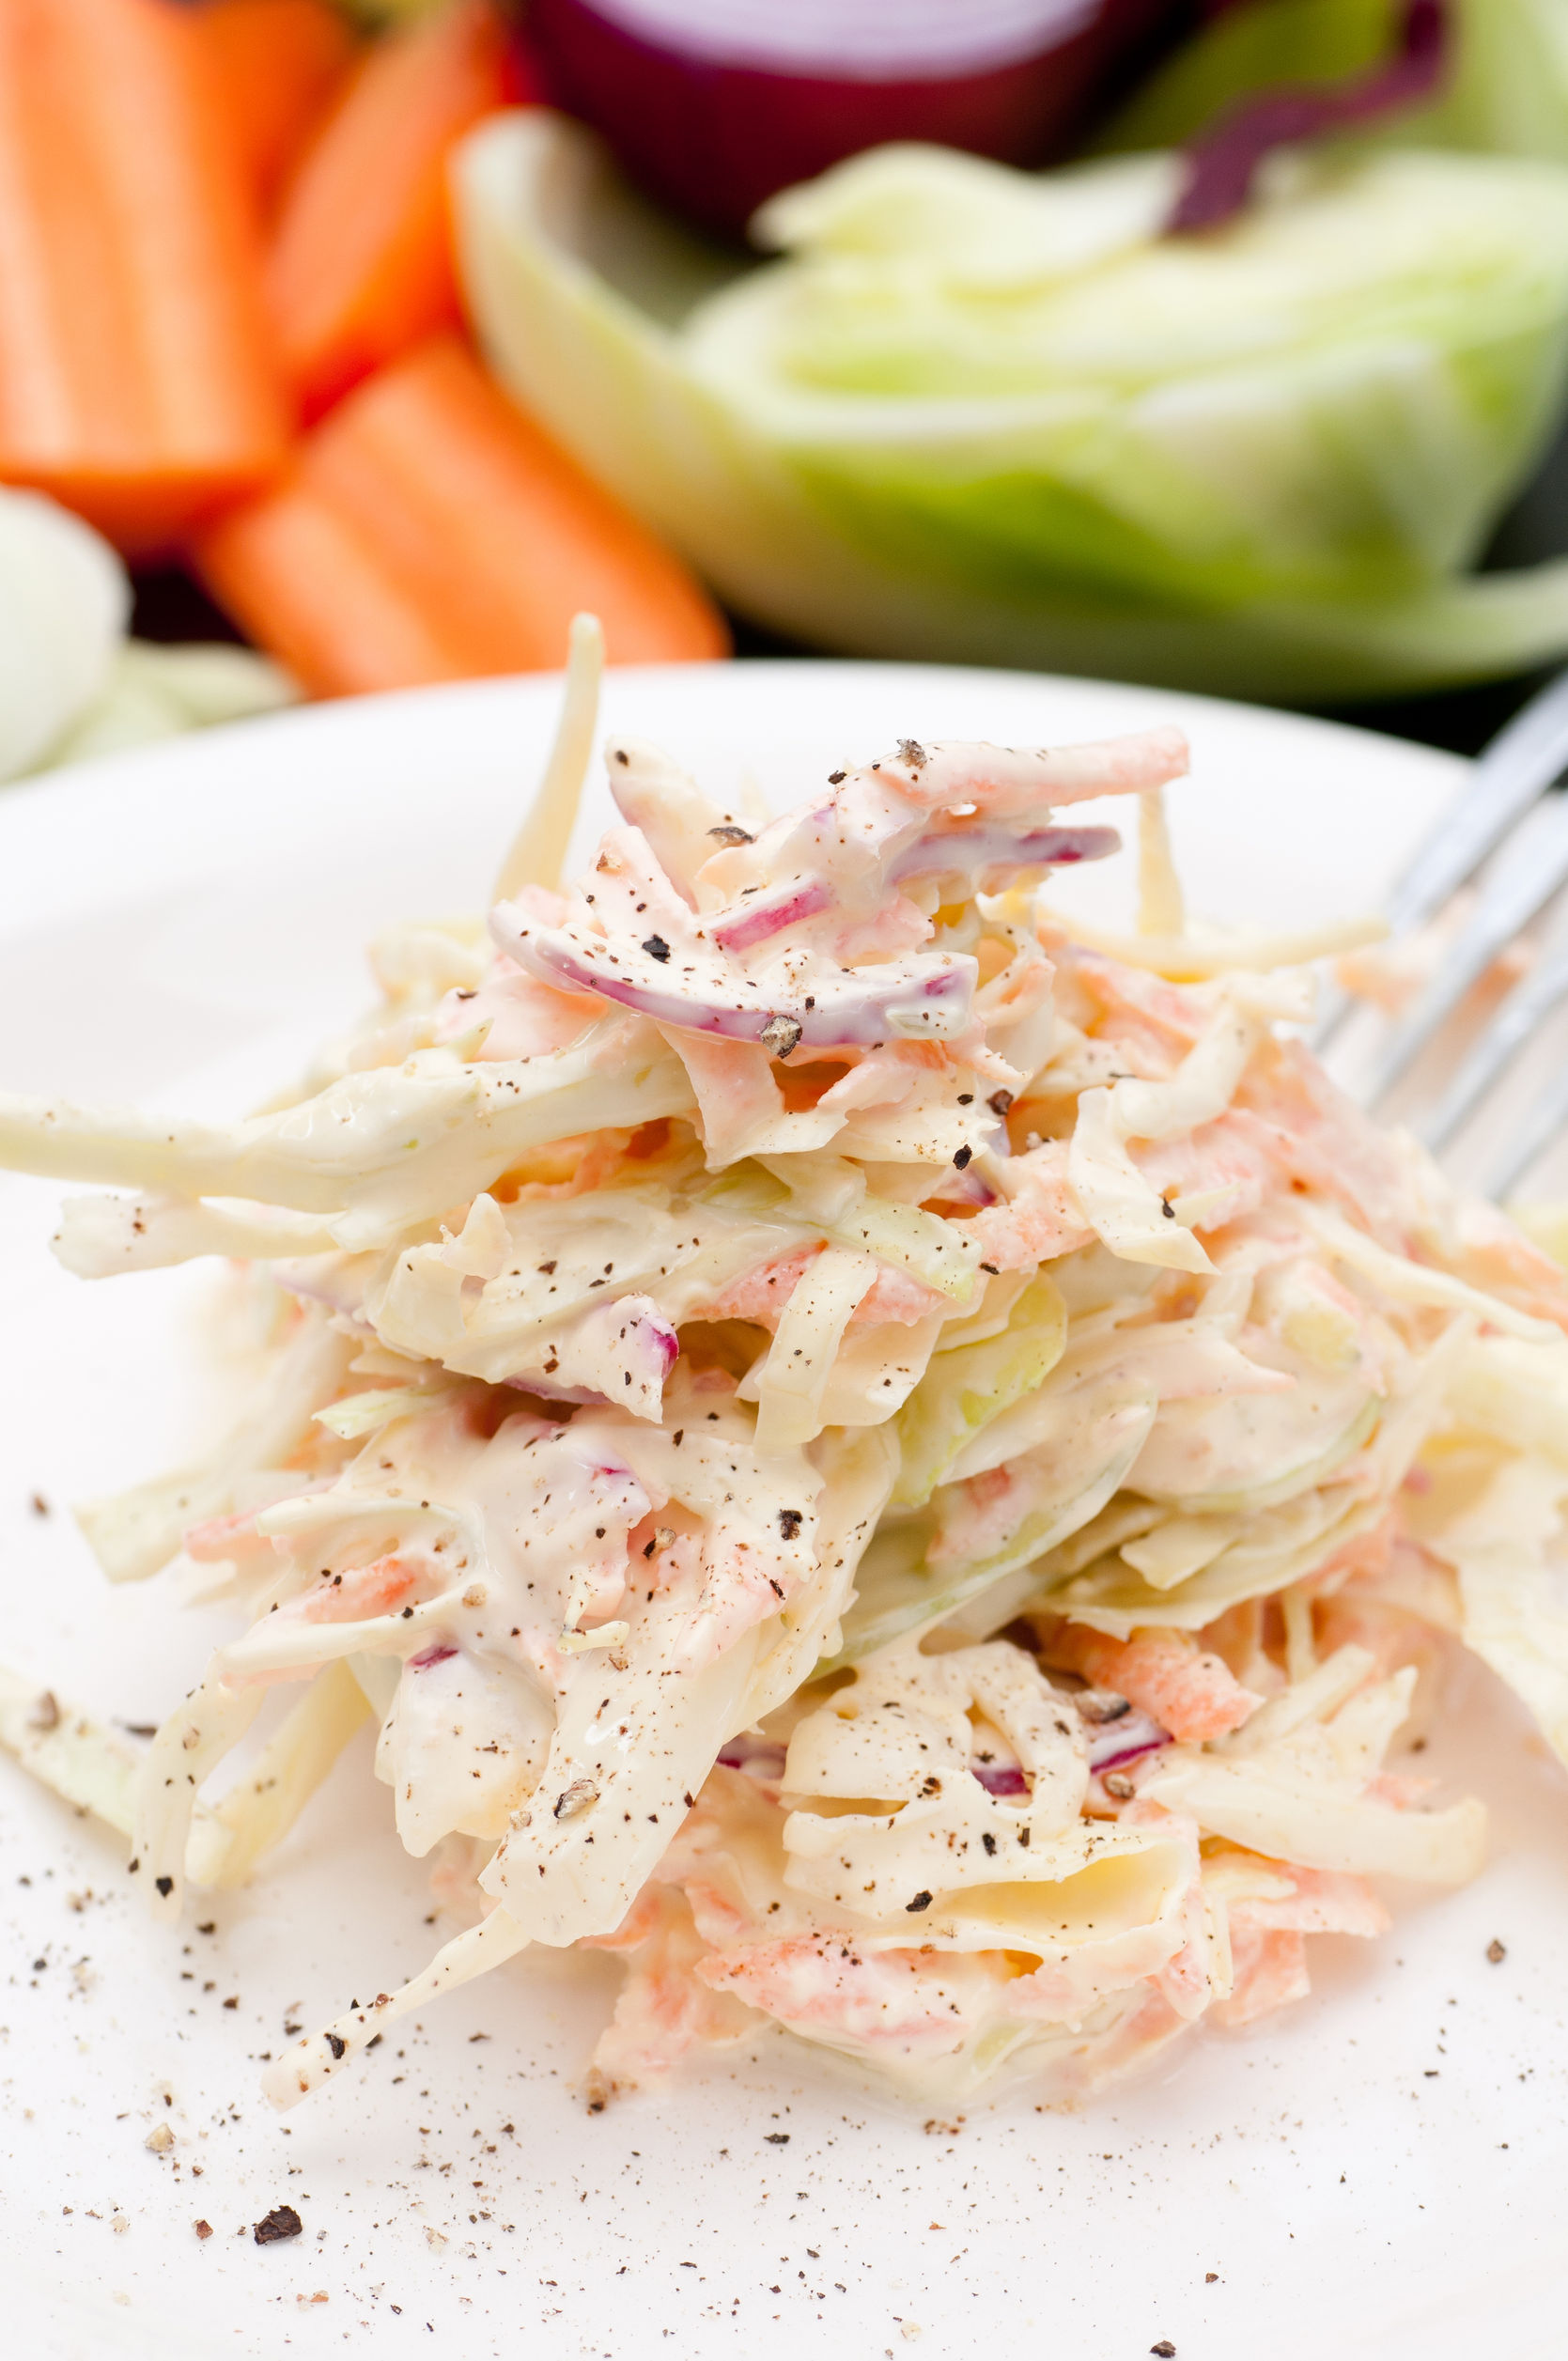 We Love This Creamy Cole Slaw And You Will Too! - 12 Tomatoes